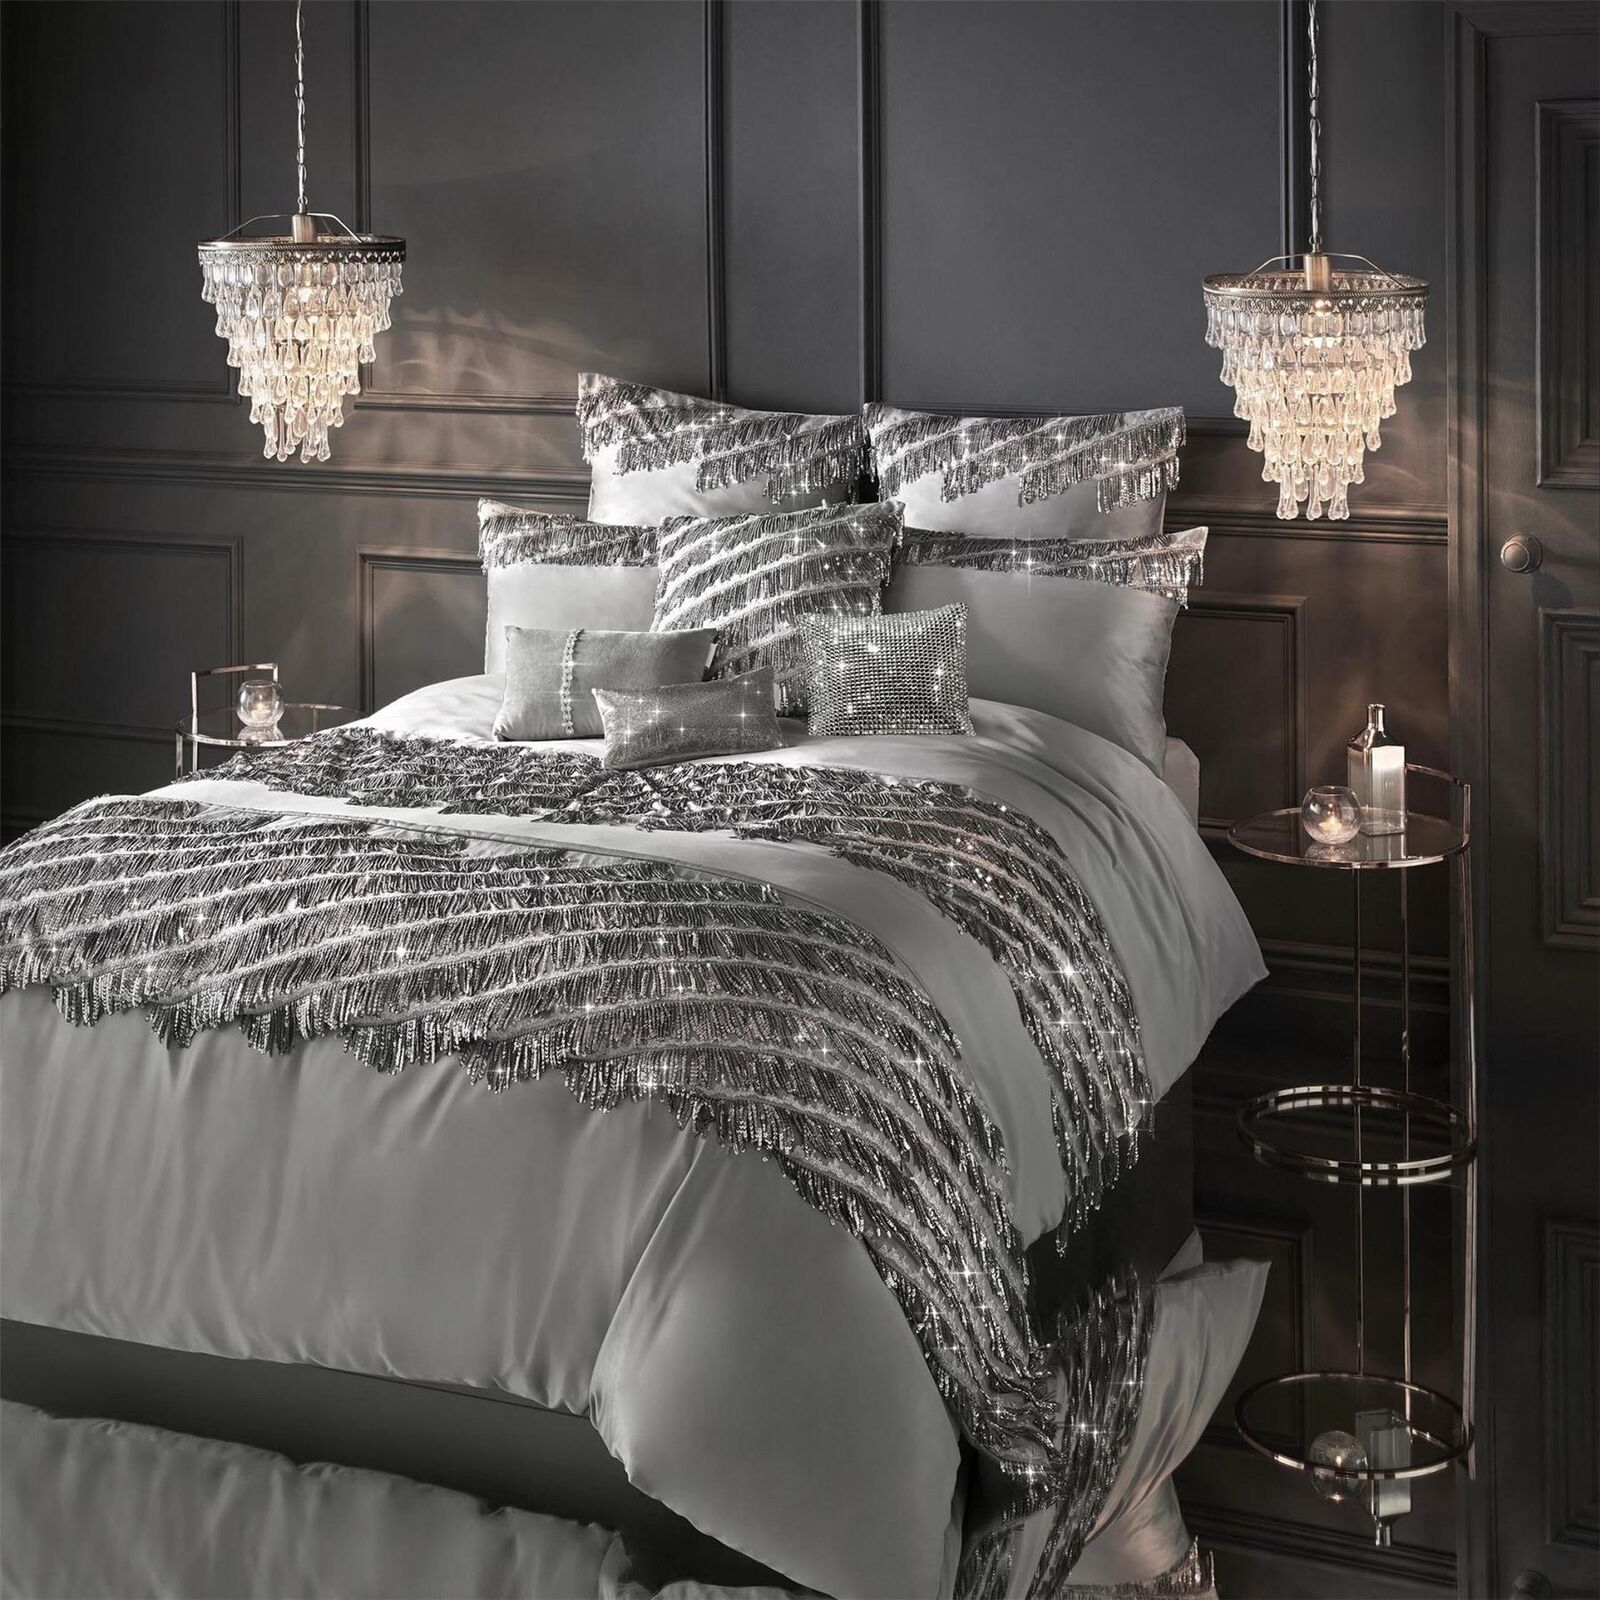 Kylie Minogue Elize Pewter Duvet Cover Bed Set Or Throw Or Cushion Or P case